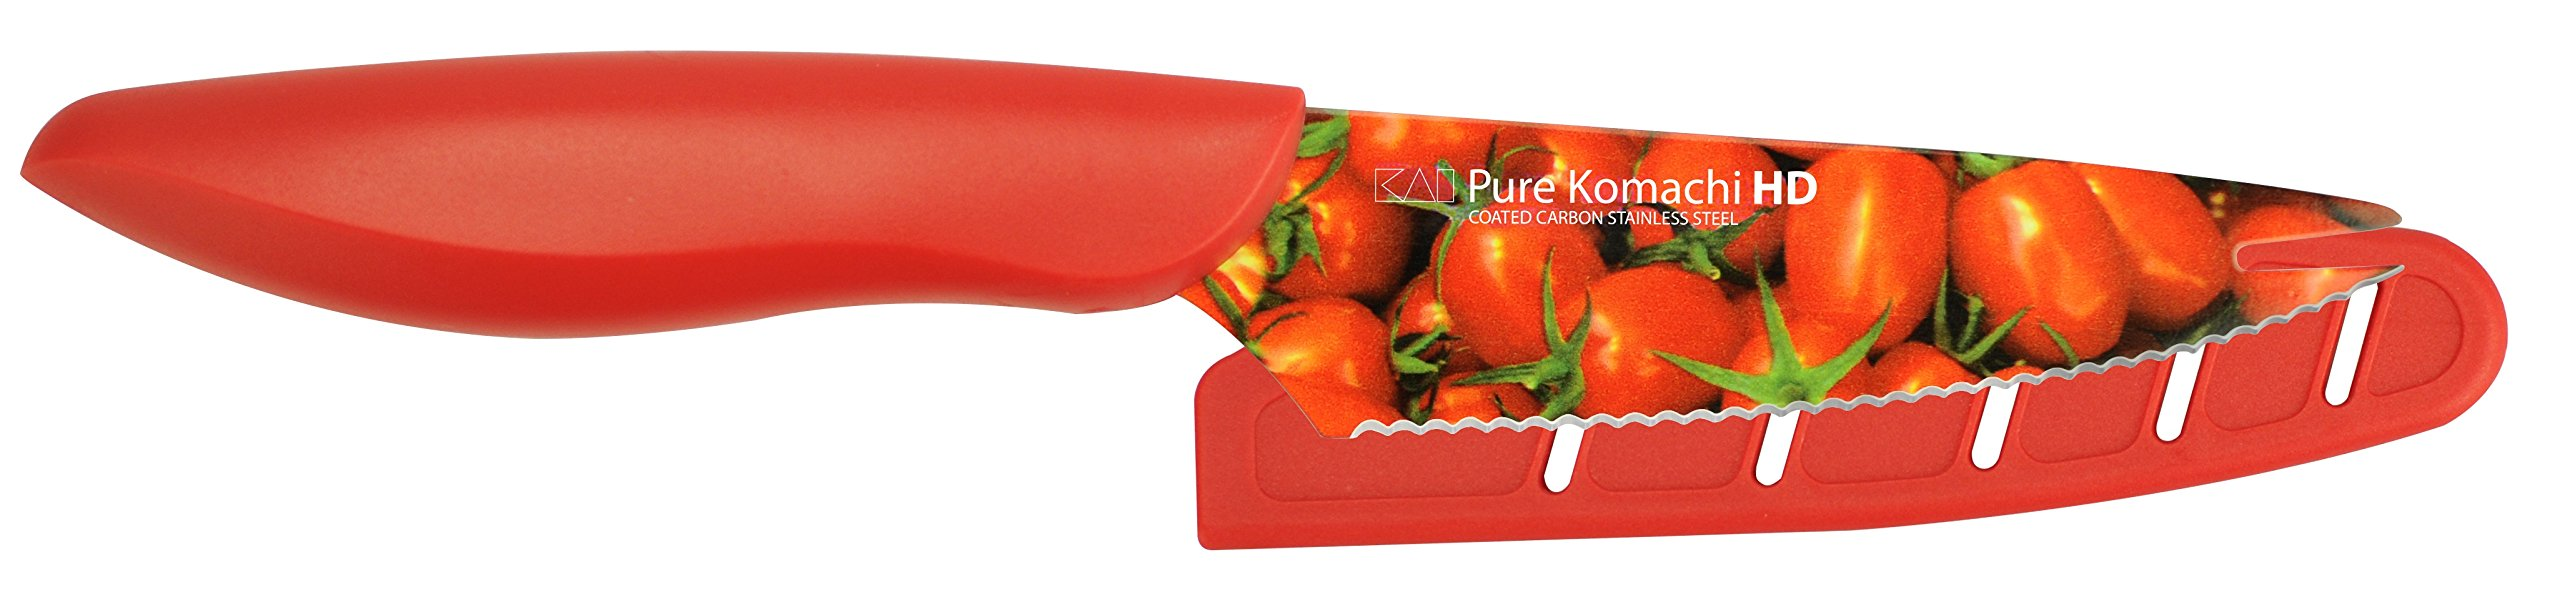 Kai USA Pure Komachi 2 AB9004 HD Photo Tomato Knife, 4-Inch, Tomatoes